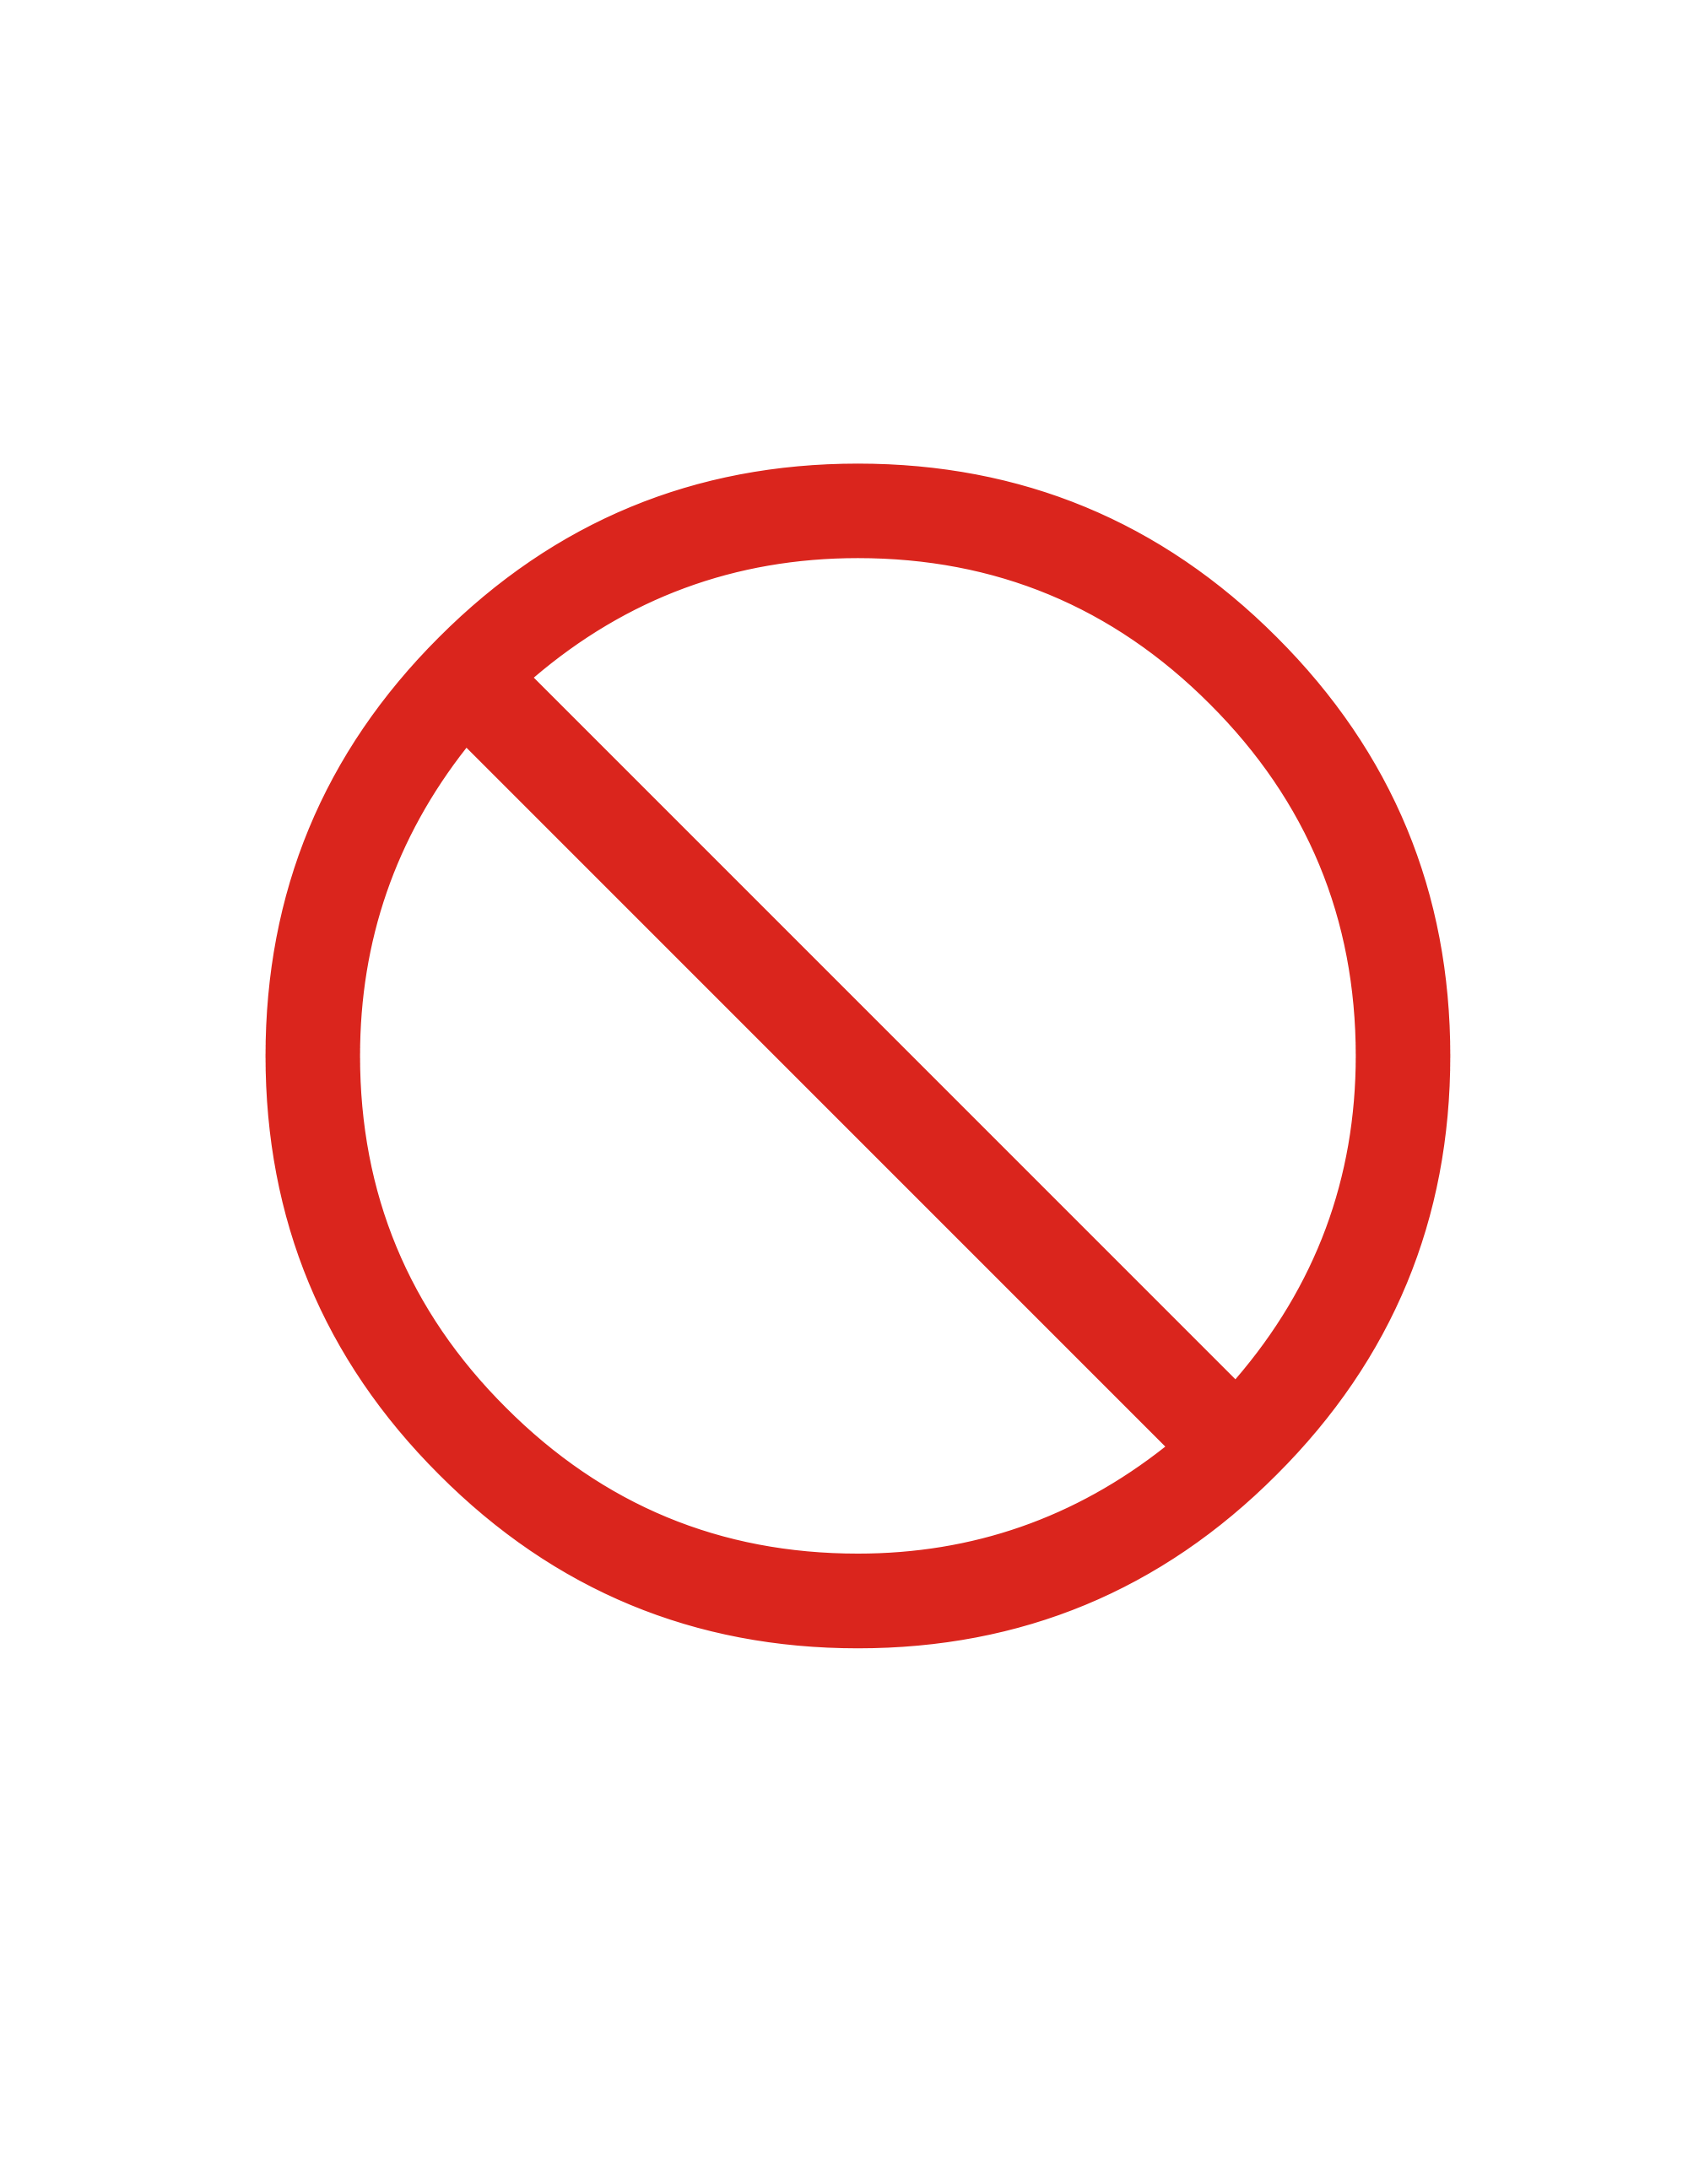 Prohibited Sign.